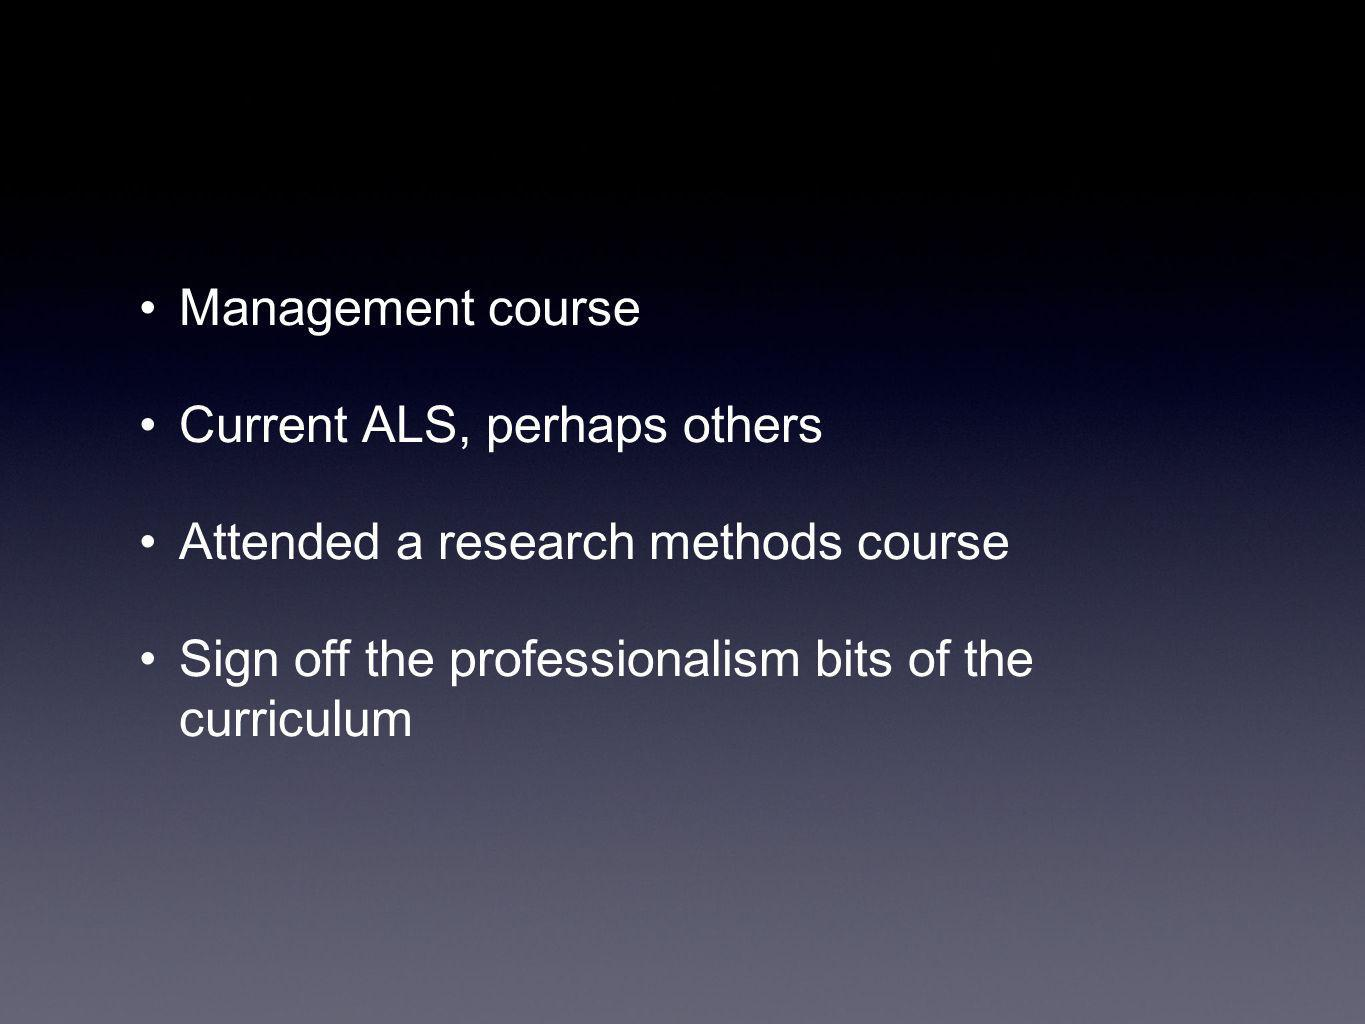 Management course Current ALS, perhaps others Attended a research methods course Sign off the professionalism bits of the curriculum